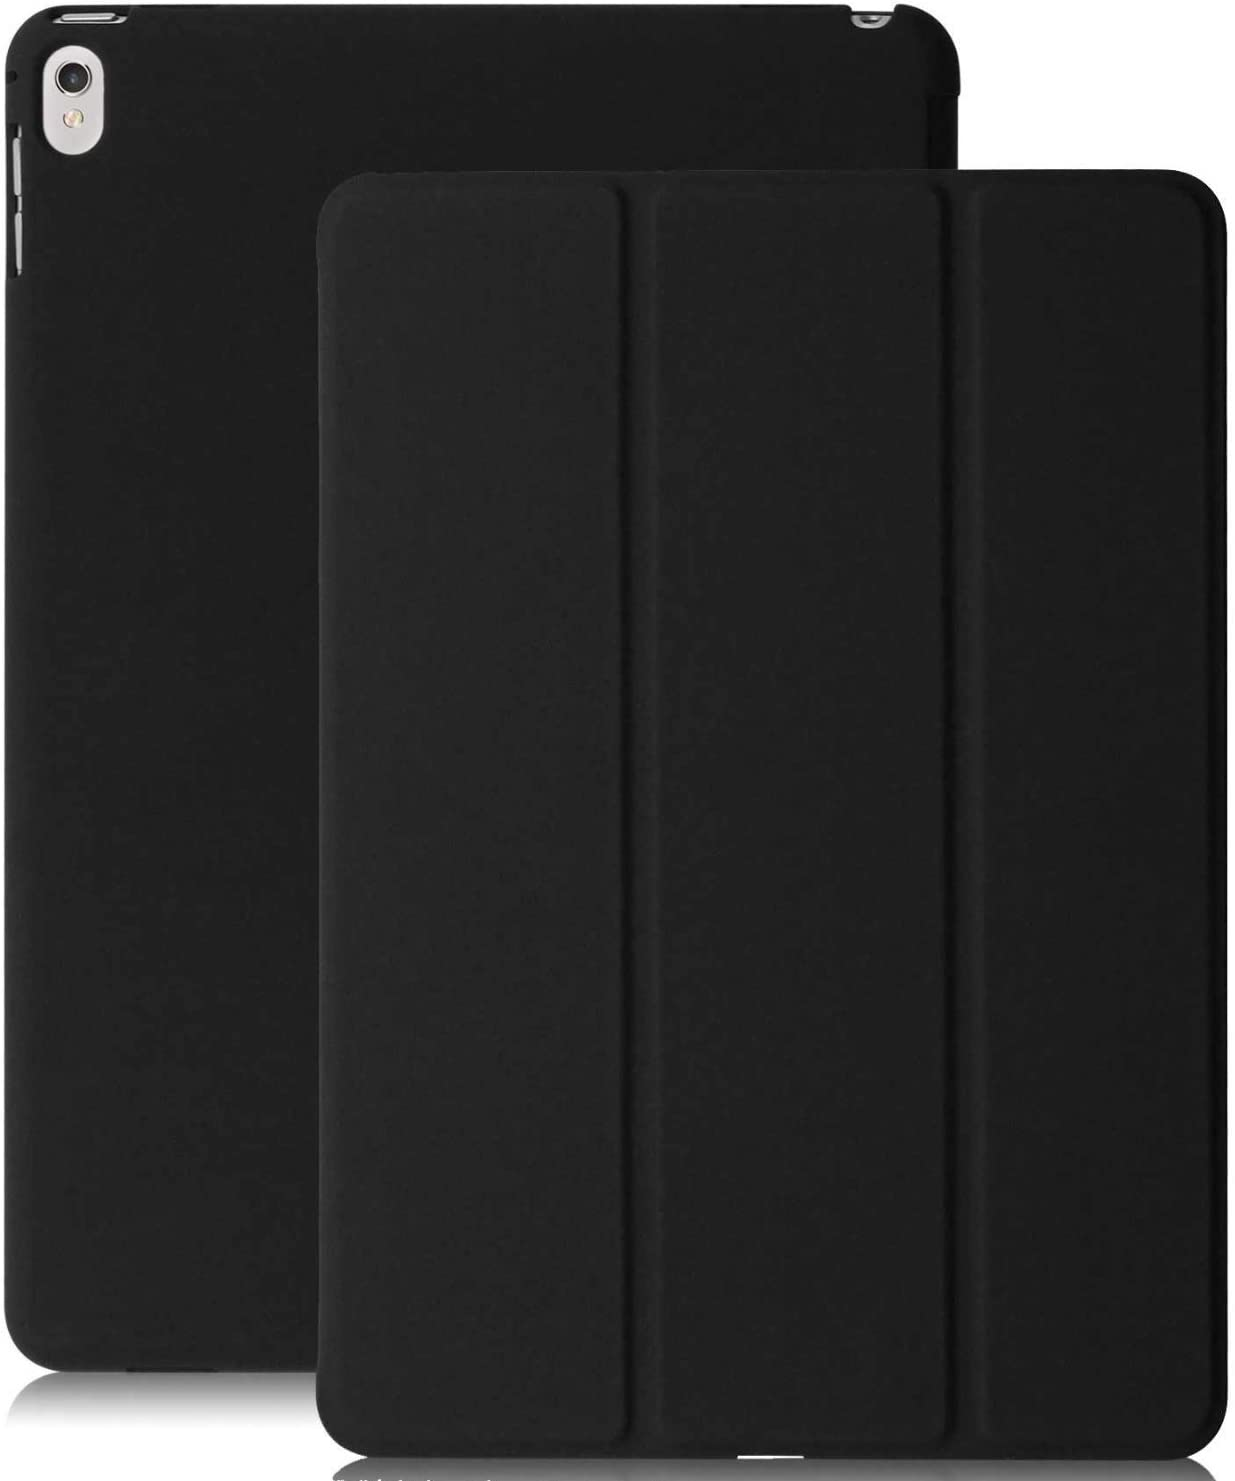 KHOMO iPad Pro 12.9 Inch Case 2017 2nd Gen. - Dual Black Super Slim Cover with Rubberized Back and Smart Feature